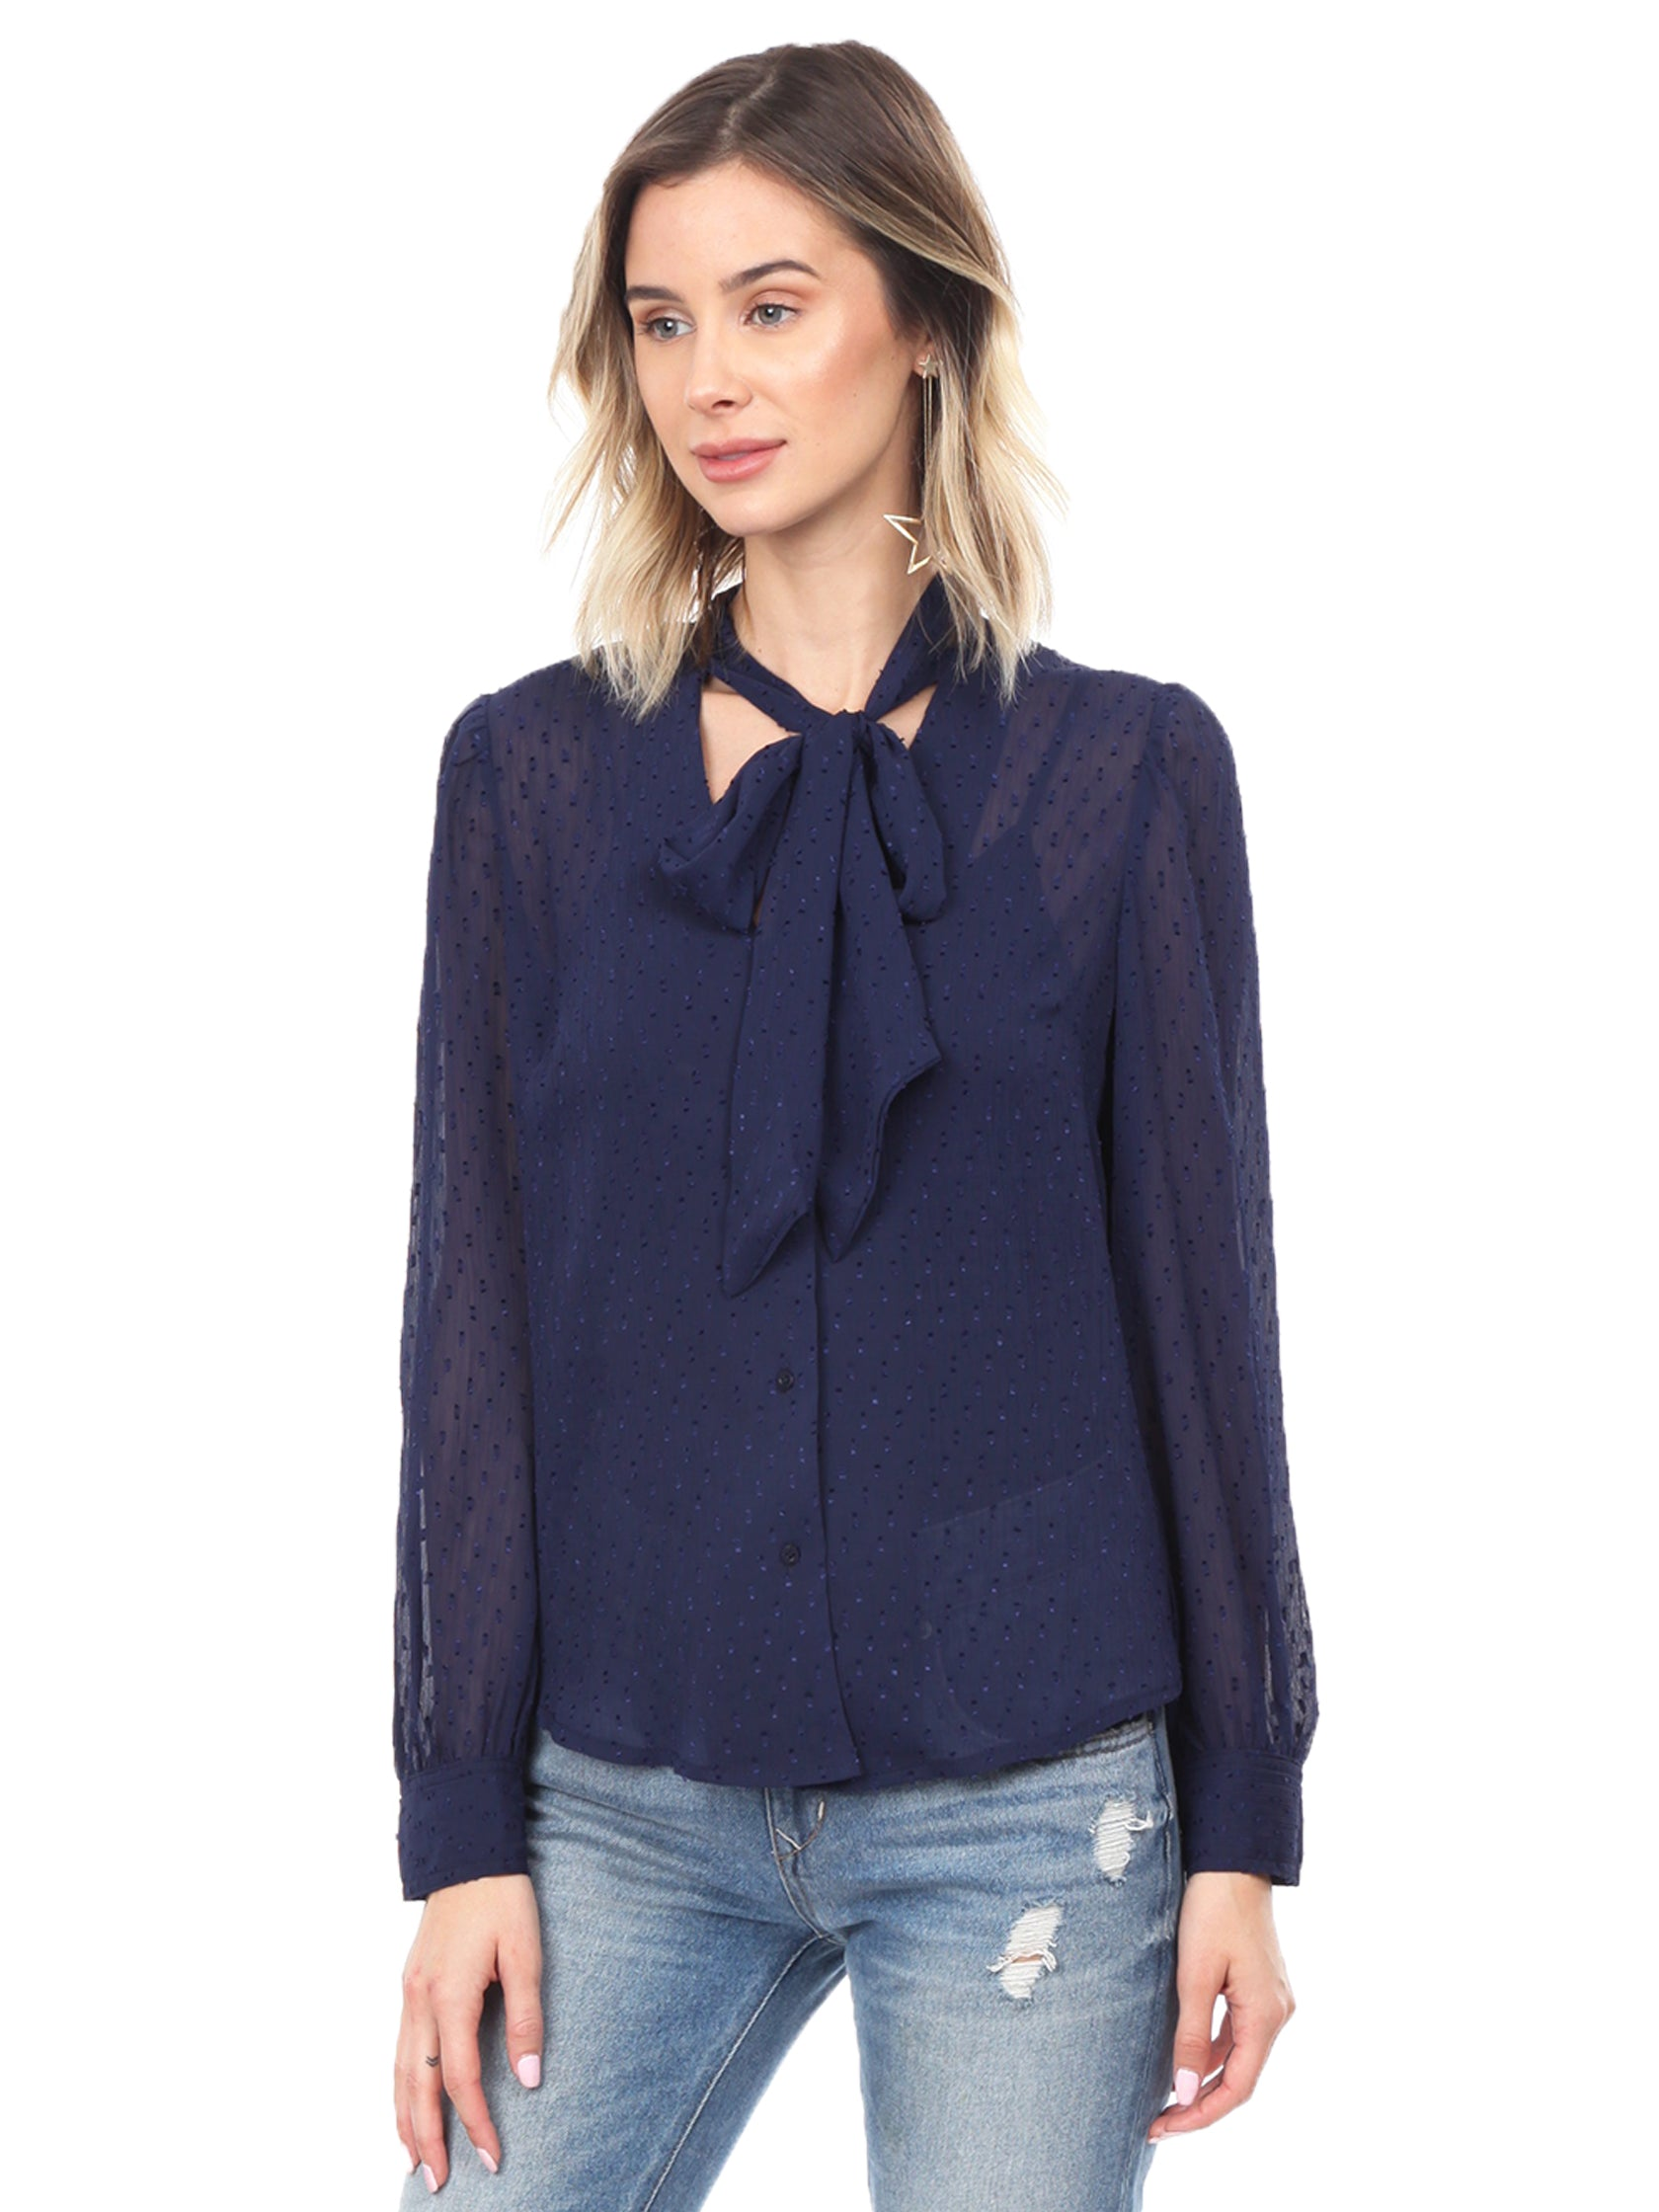 Woman wearing a top rental from FashionPass called Dottie Long Sleeve Blouse